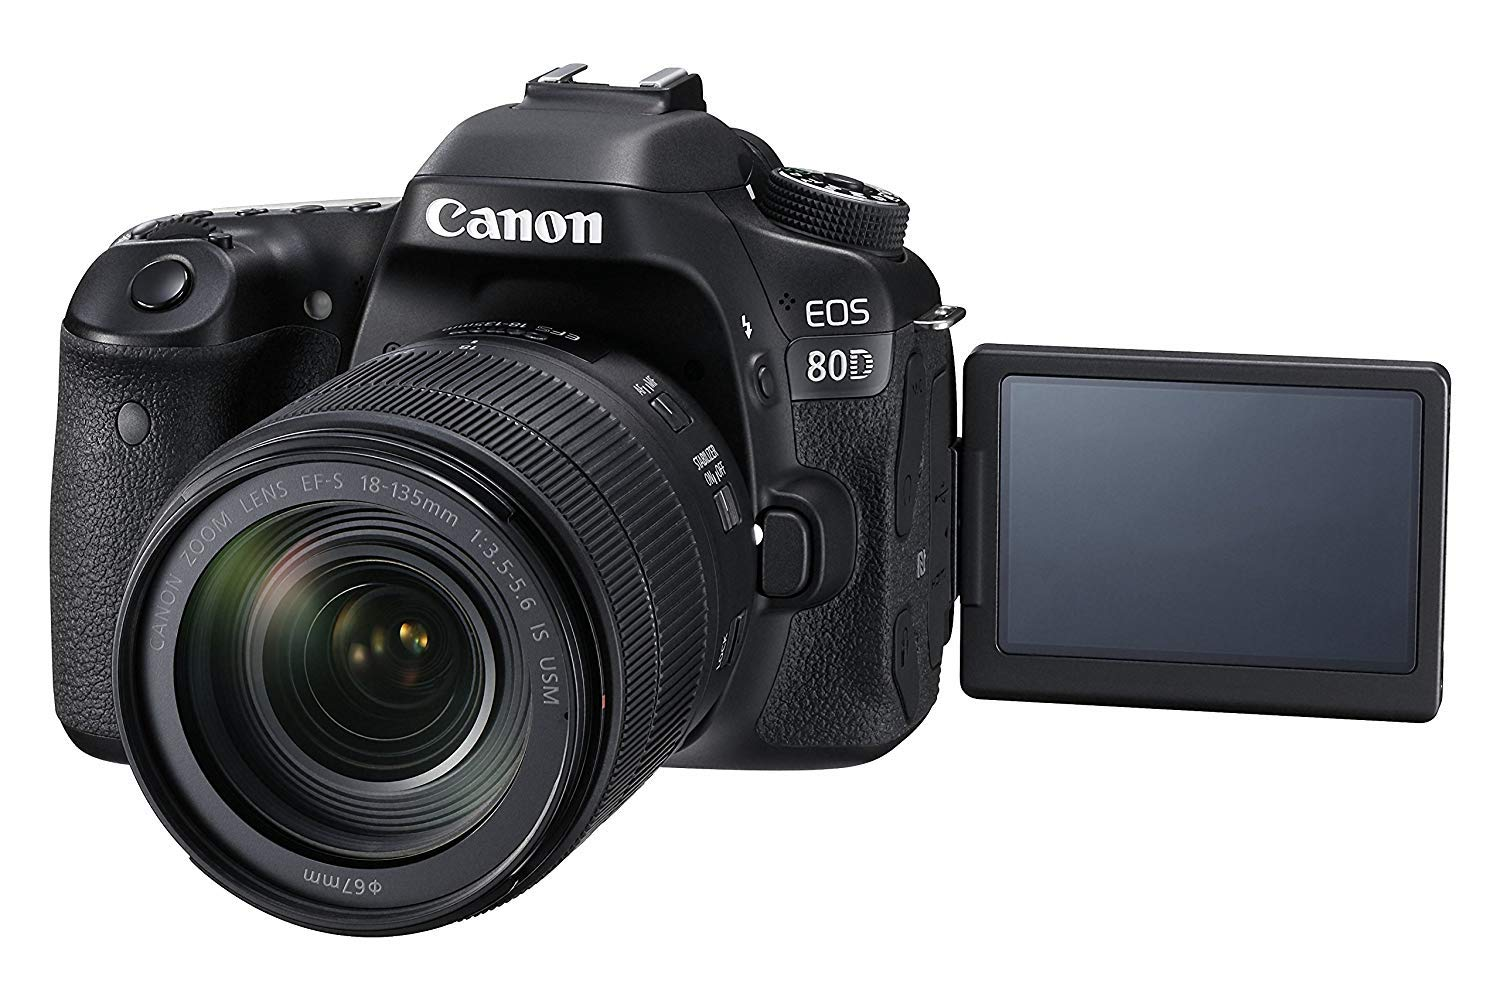 Canon EOS 80D 18-135mm IS USM Lens Kit - 24.2 MP, SLR Camera